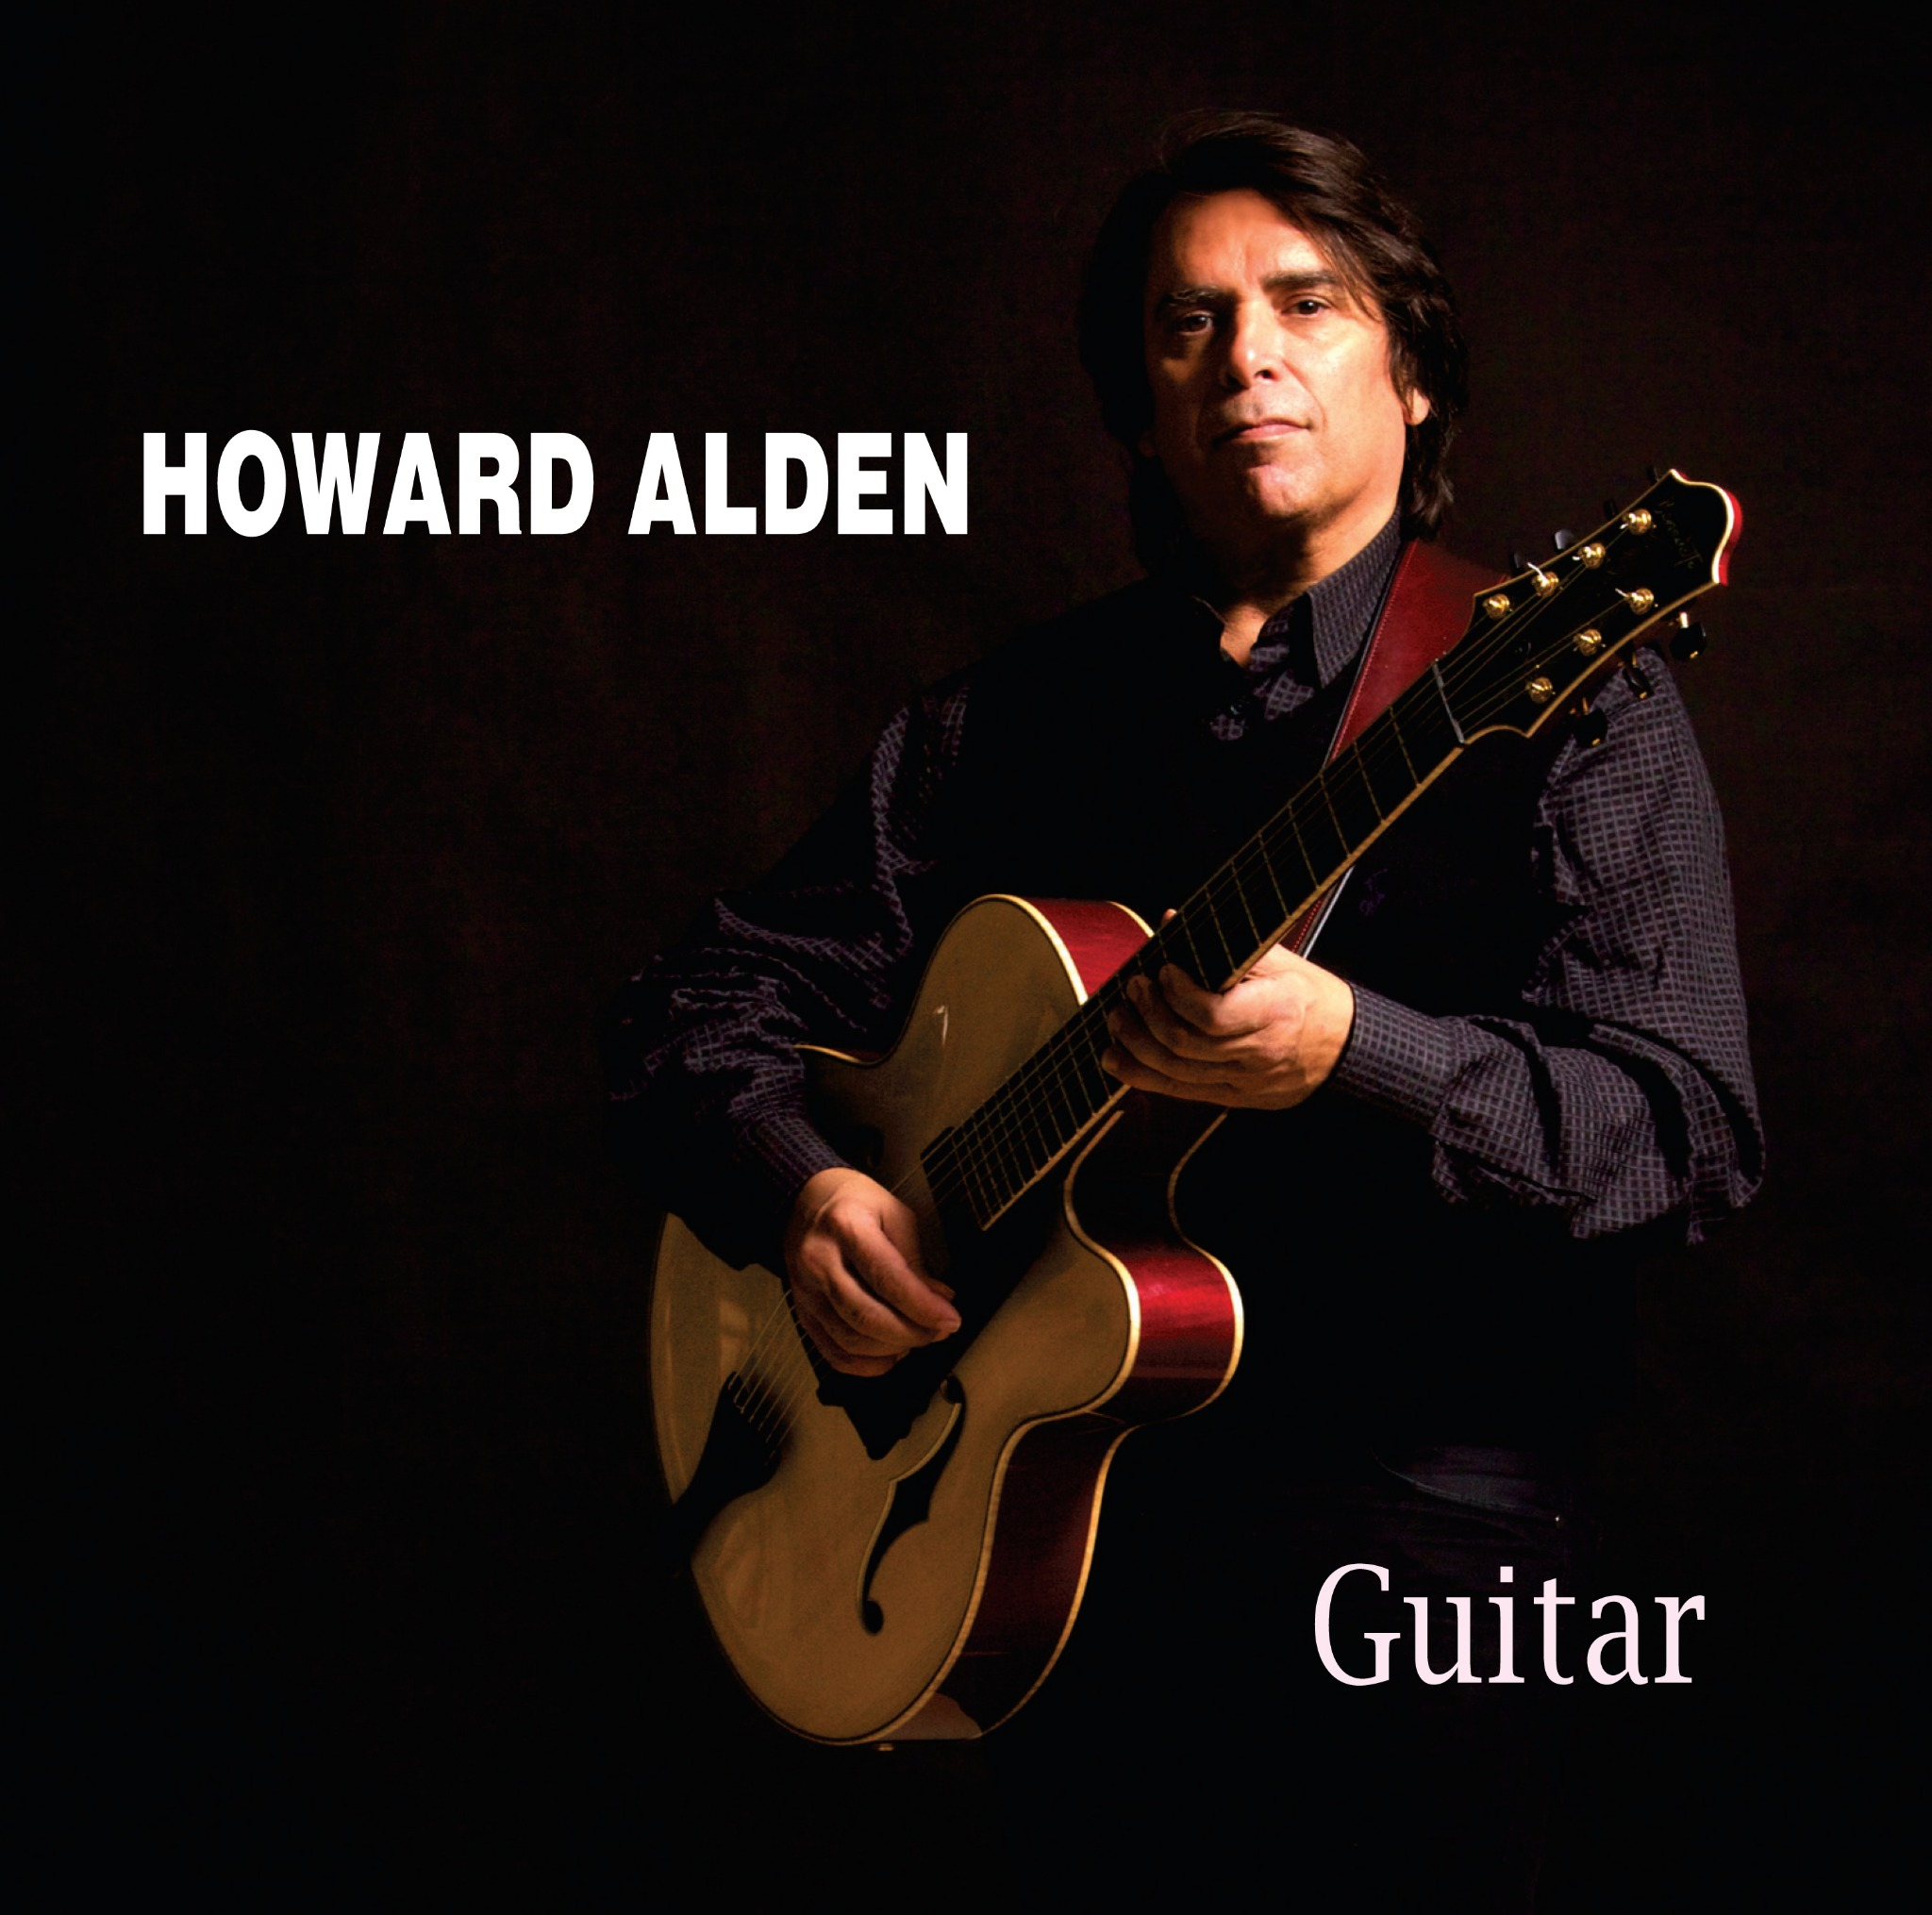 Howard Alden - GUITAR (K2B2 4469) 44.1/16-bit .wav